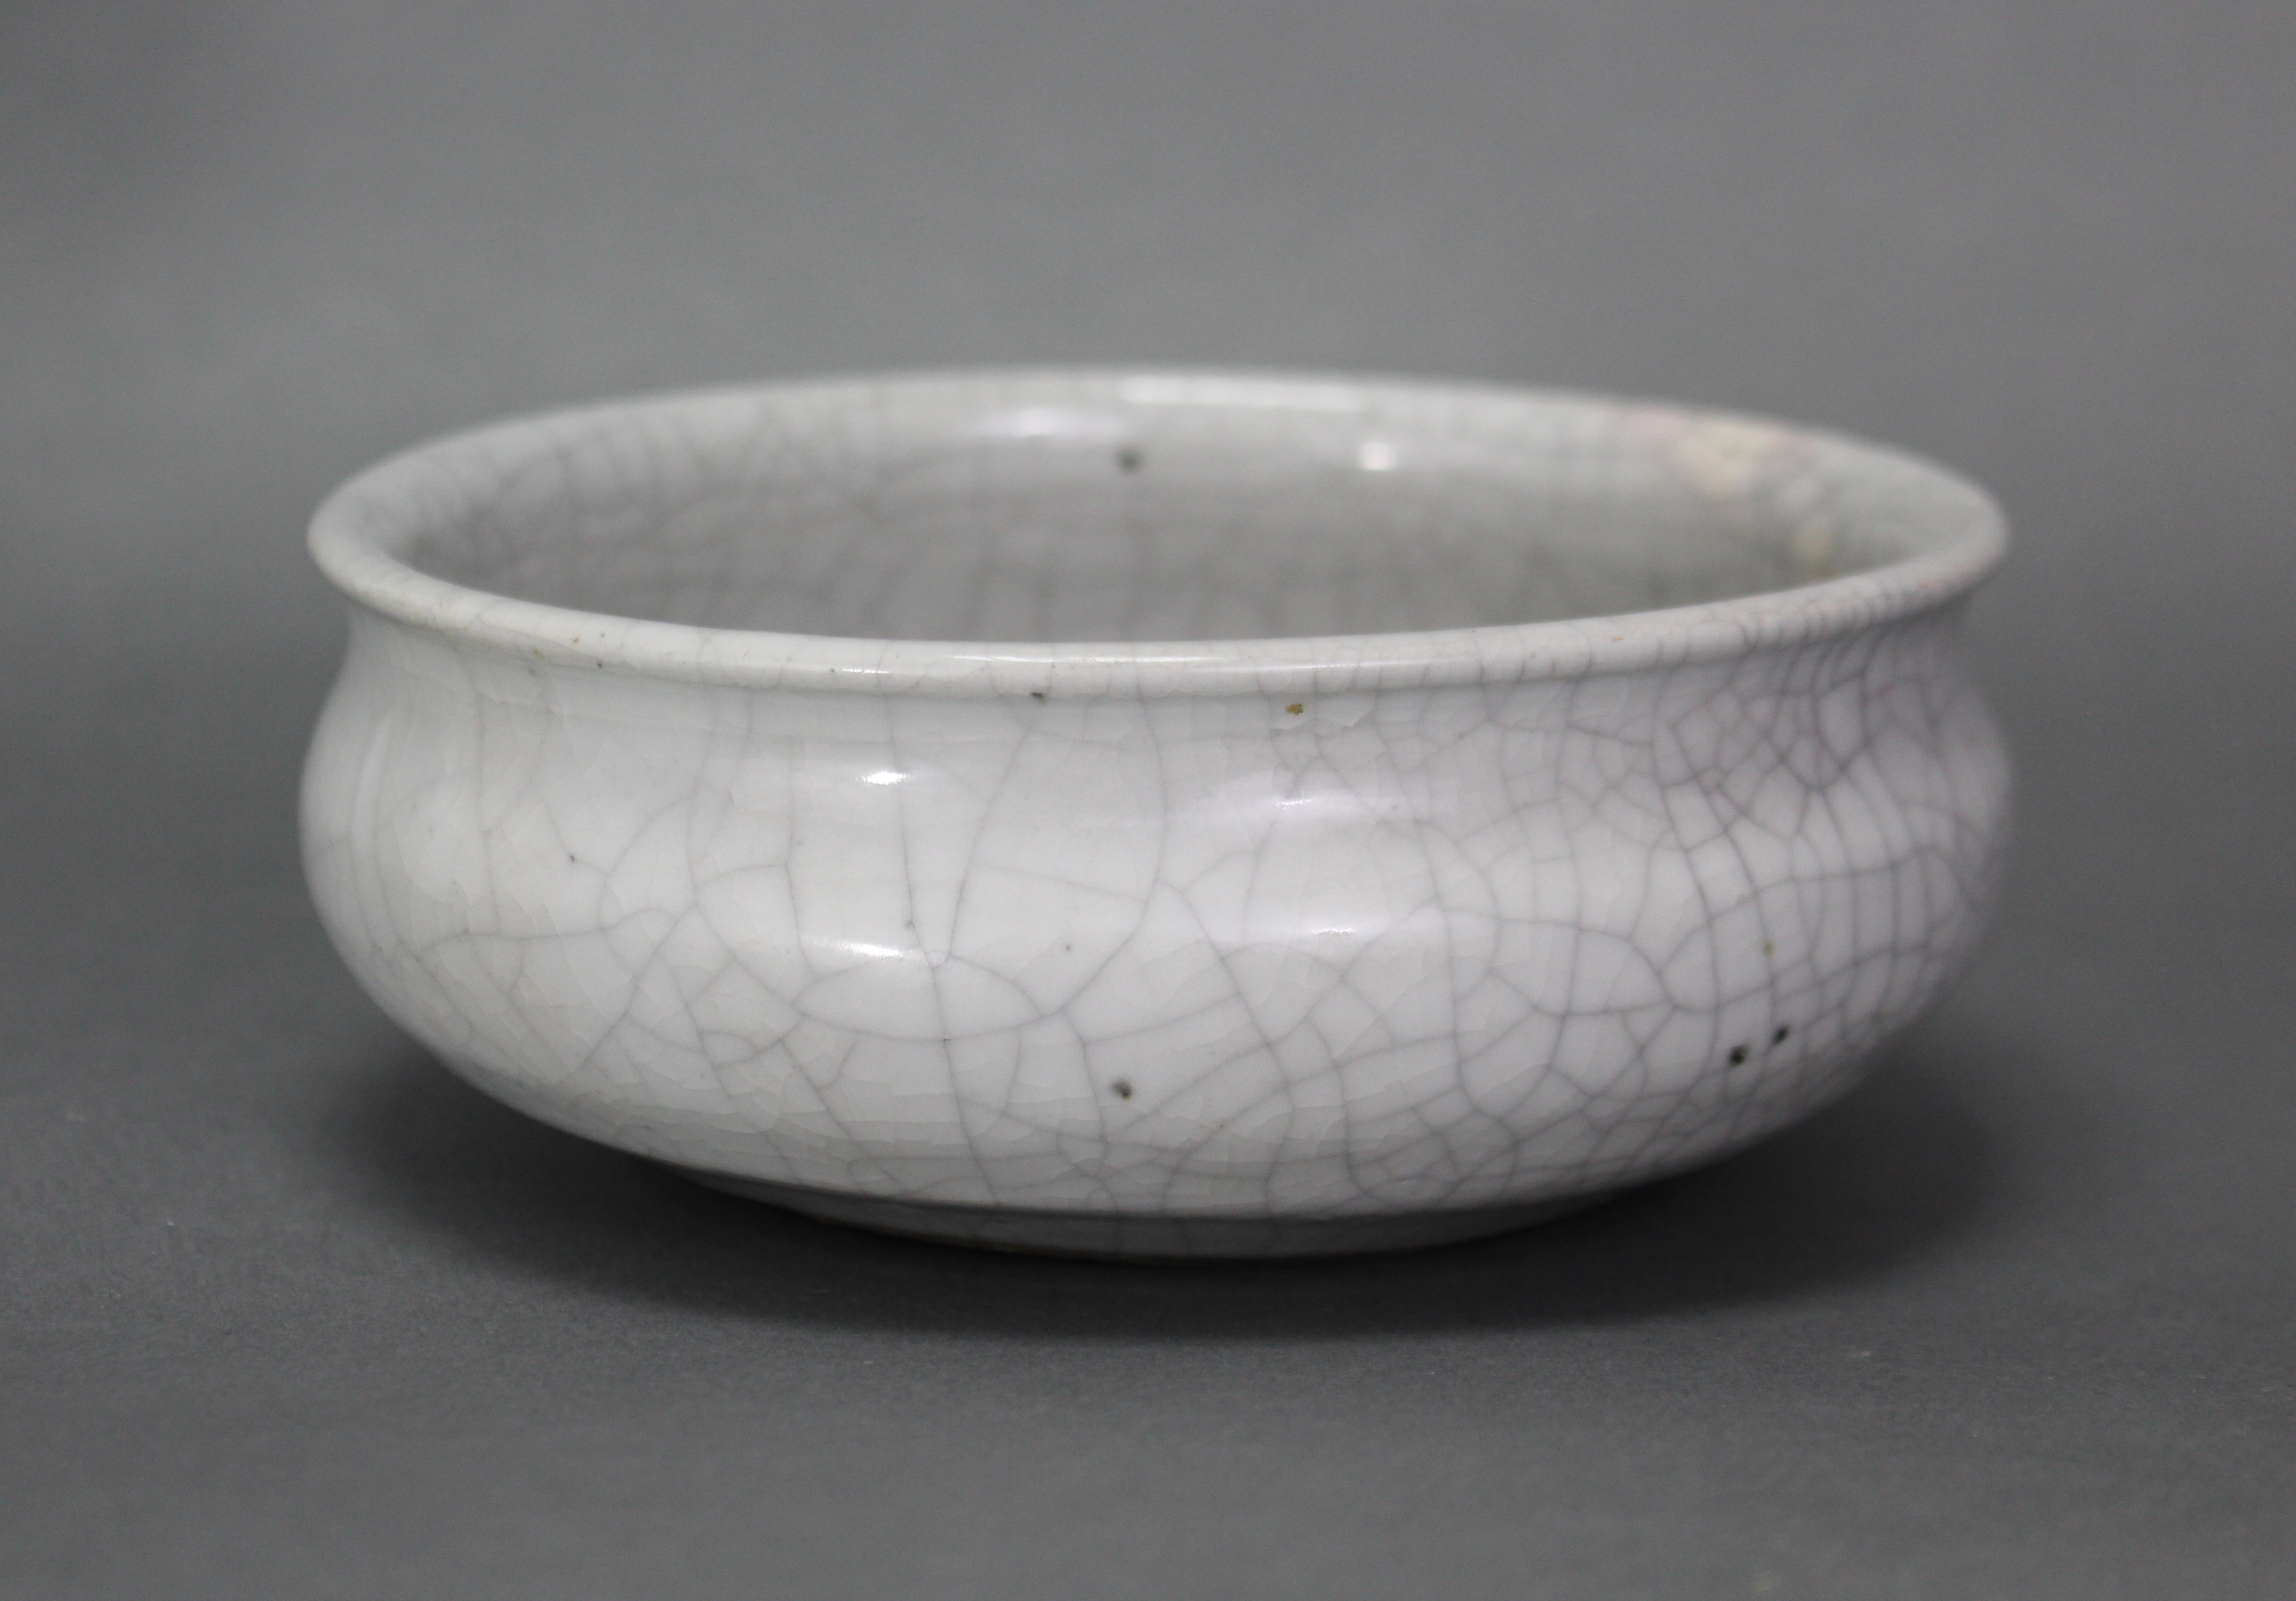 Lot 214 - A Chinese Guan-type brush washer of squat round form with slightly flared rim, pale grey crackle